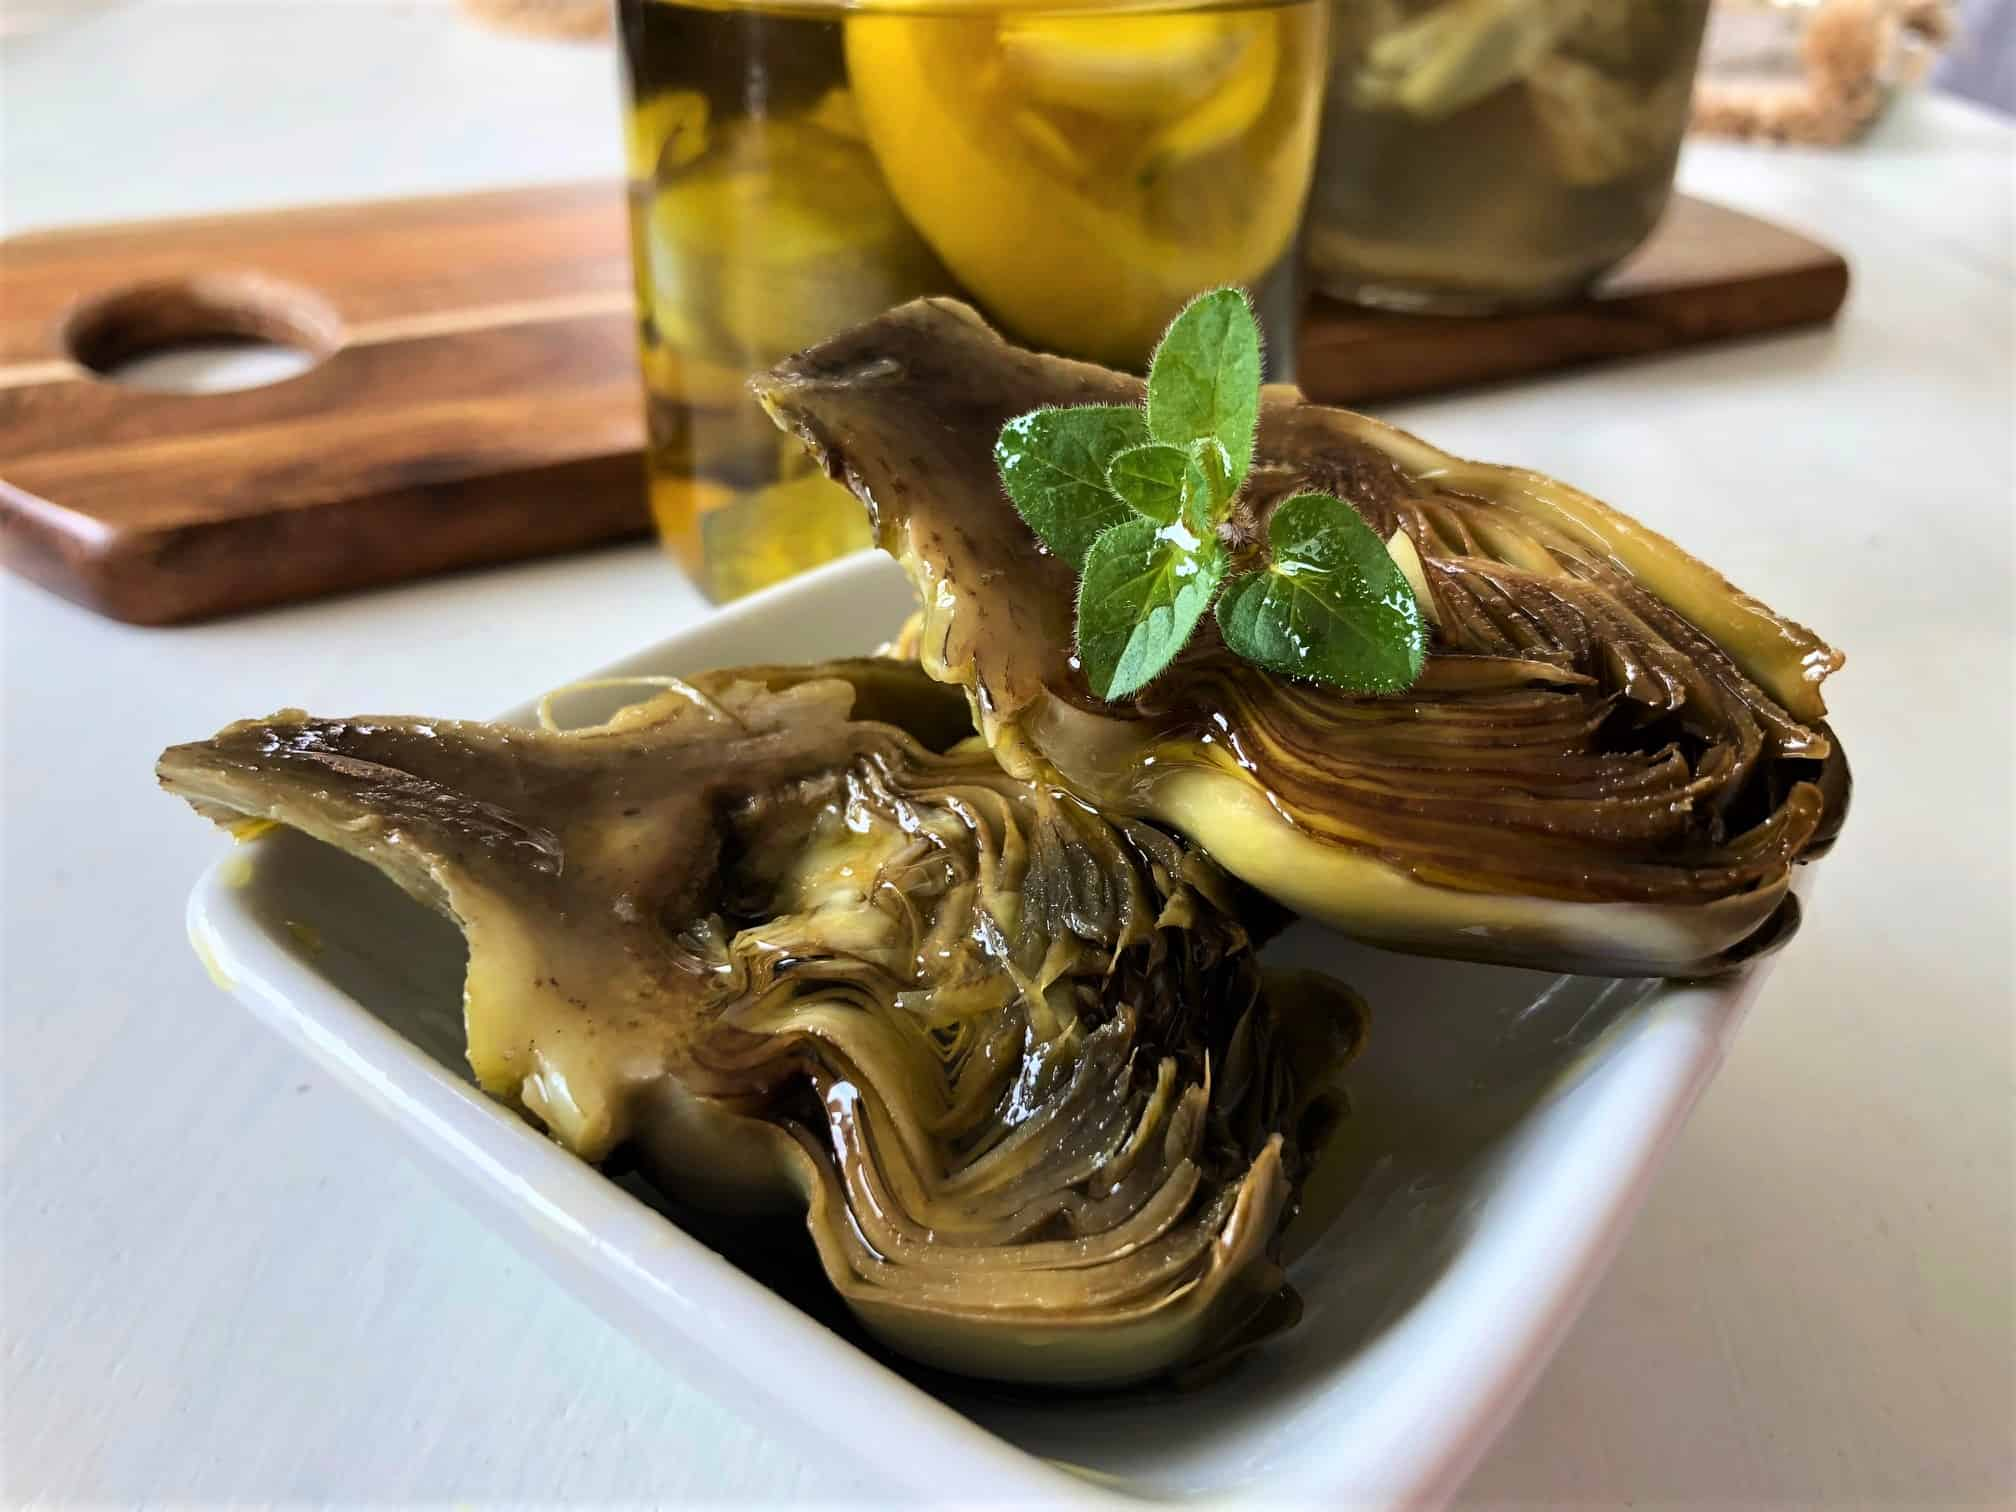 Olive Oil Poached Artichokes with Oregano and Lemon